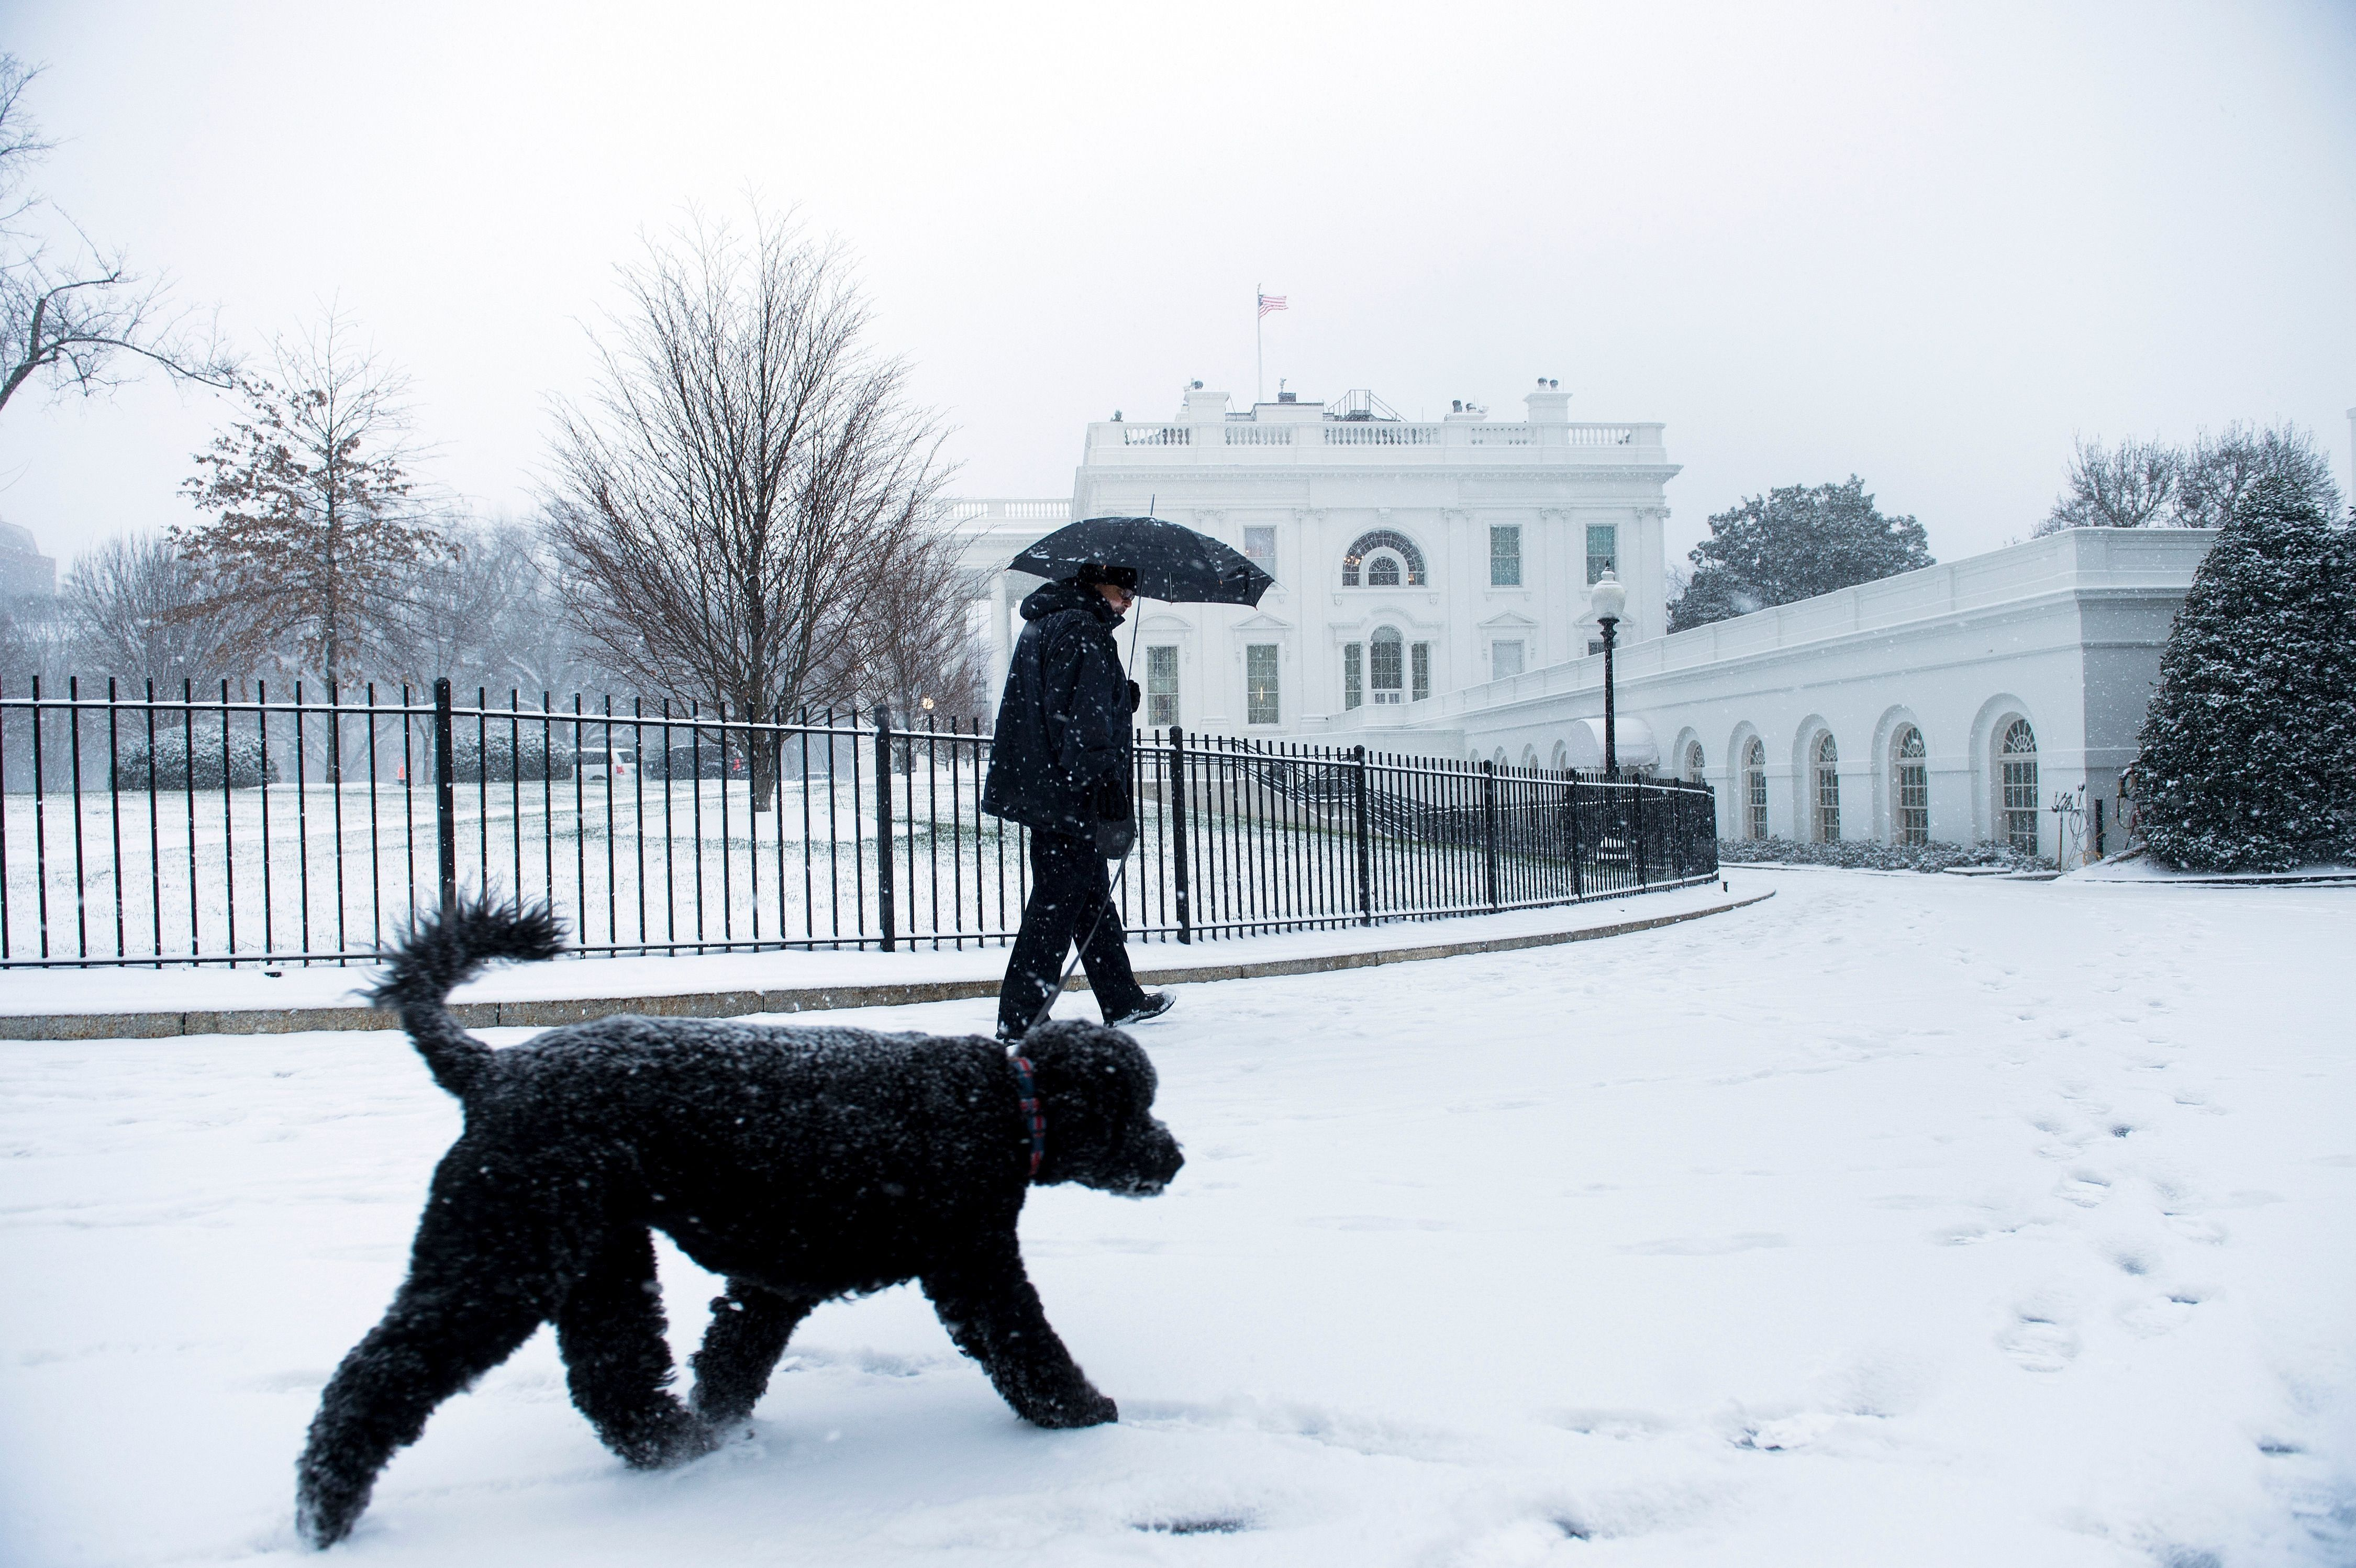 A staff member walks on of the Obama's dogs at the White House during a snow storm in Washington on January 22, 2016. Thousands of flights were cancelled and supermarket shelves were left bare Friday as millions of Americans hunkered down for a winter storm expected to dump historic amounts of snow in the eastern United States. / AFP / Brendan Smialowski        (Photo credit should read BRENDAN SMIALOWSKI/AFP/Getty Images)